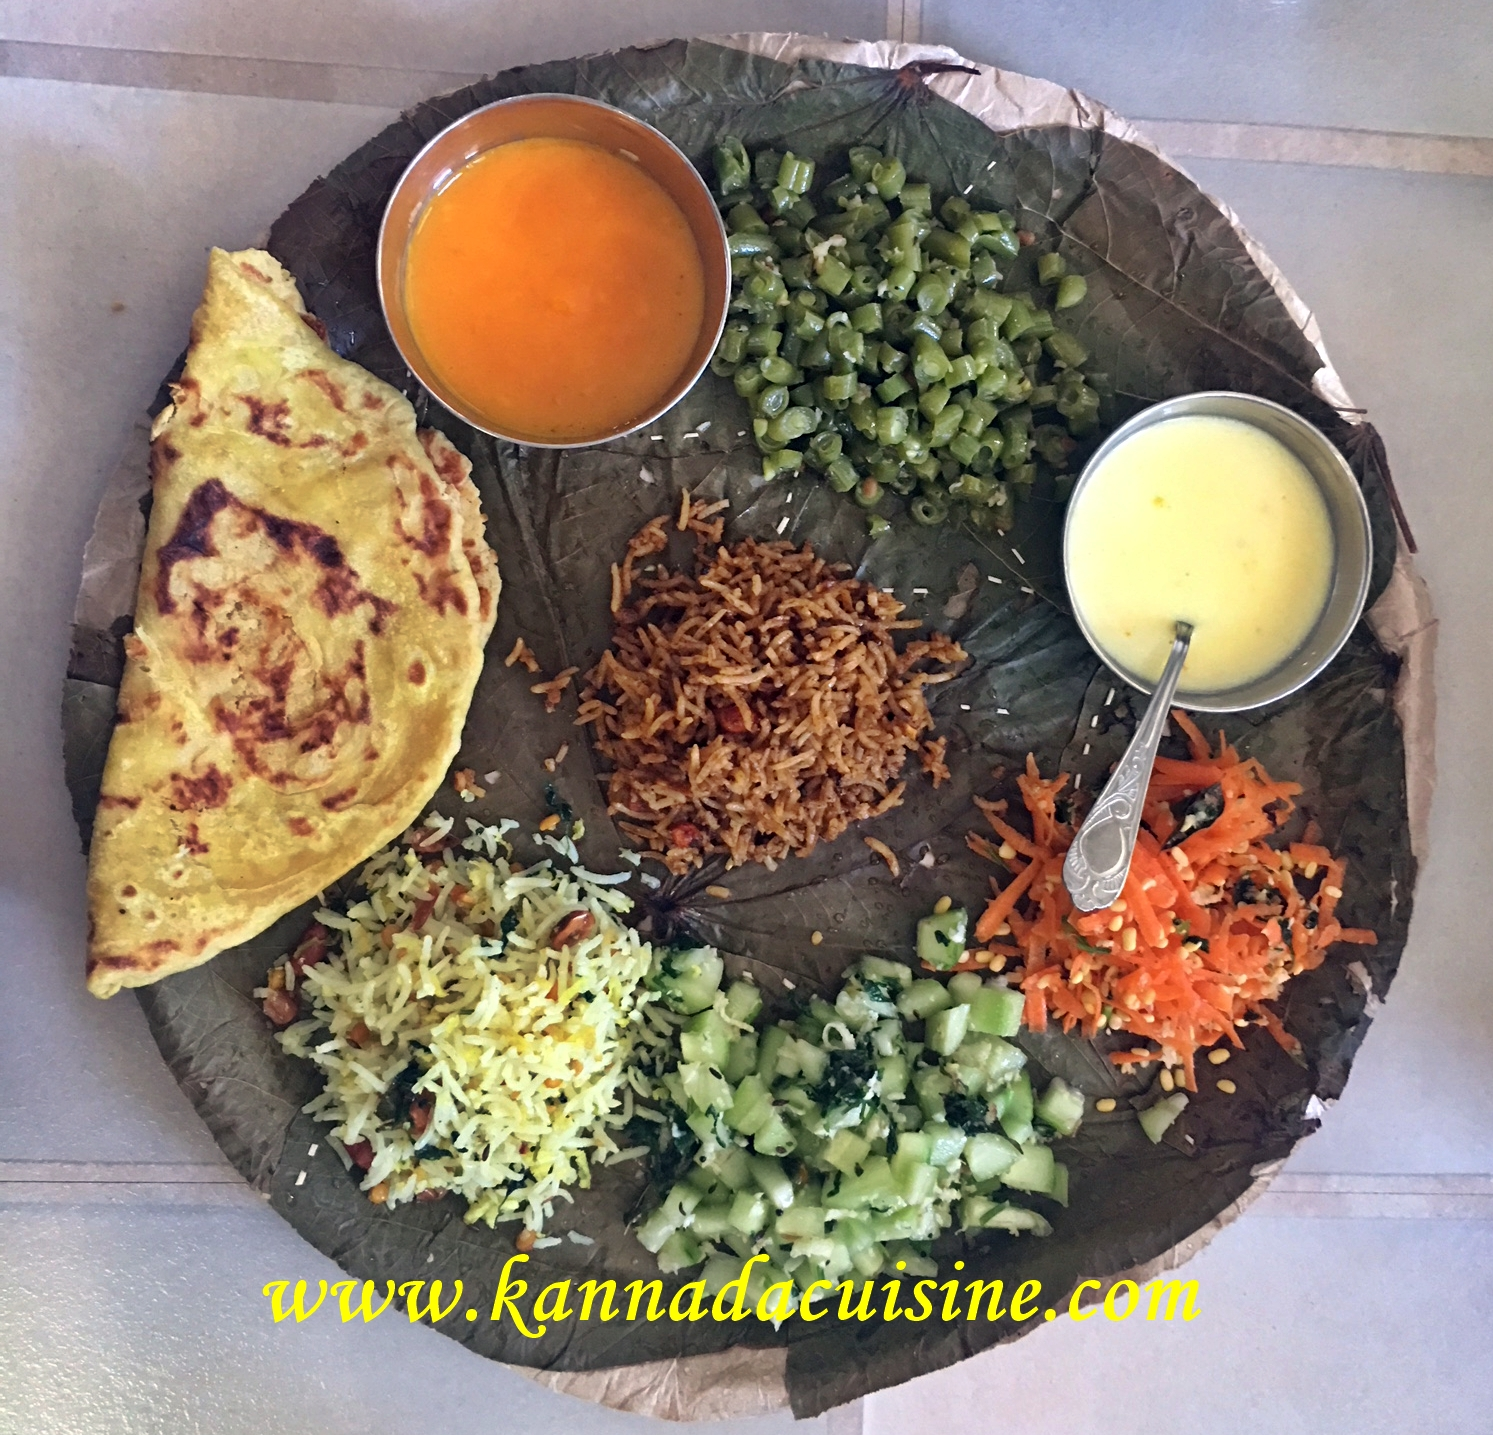 Kannada cuisine i start on the weekend before ugadi prepare my shopping list and make sure i have all ingredients so here comes the shopping list ccuart Choice Image